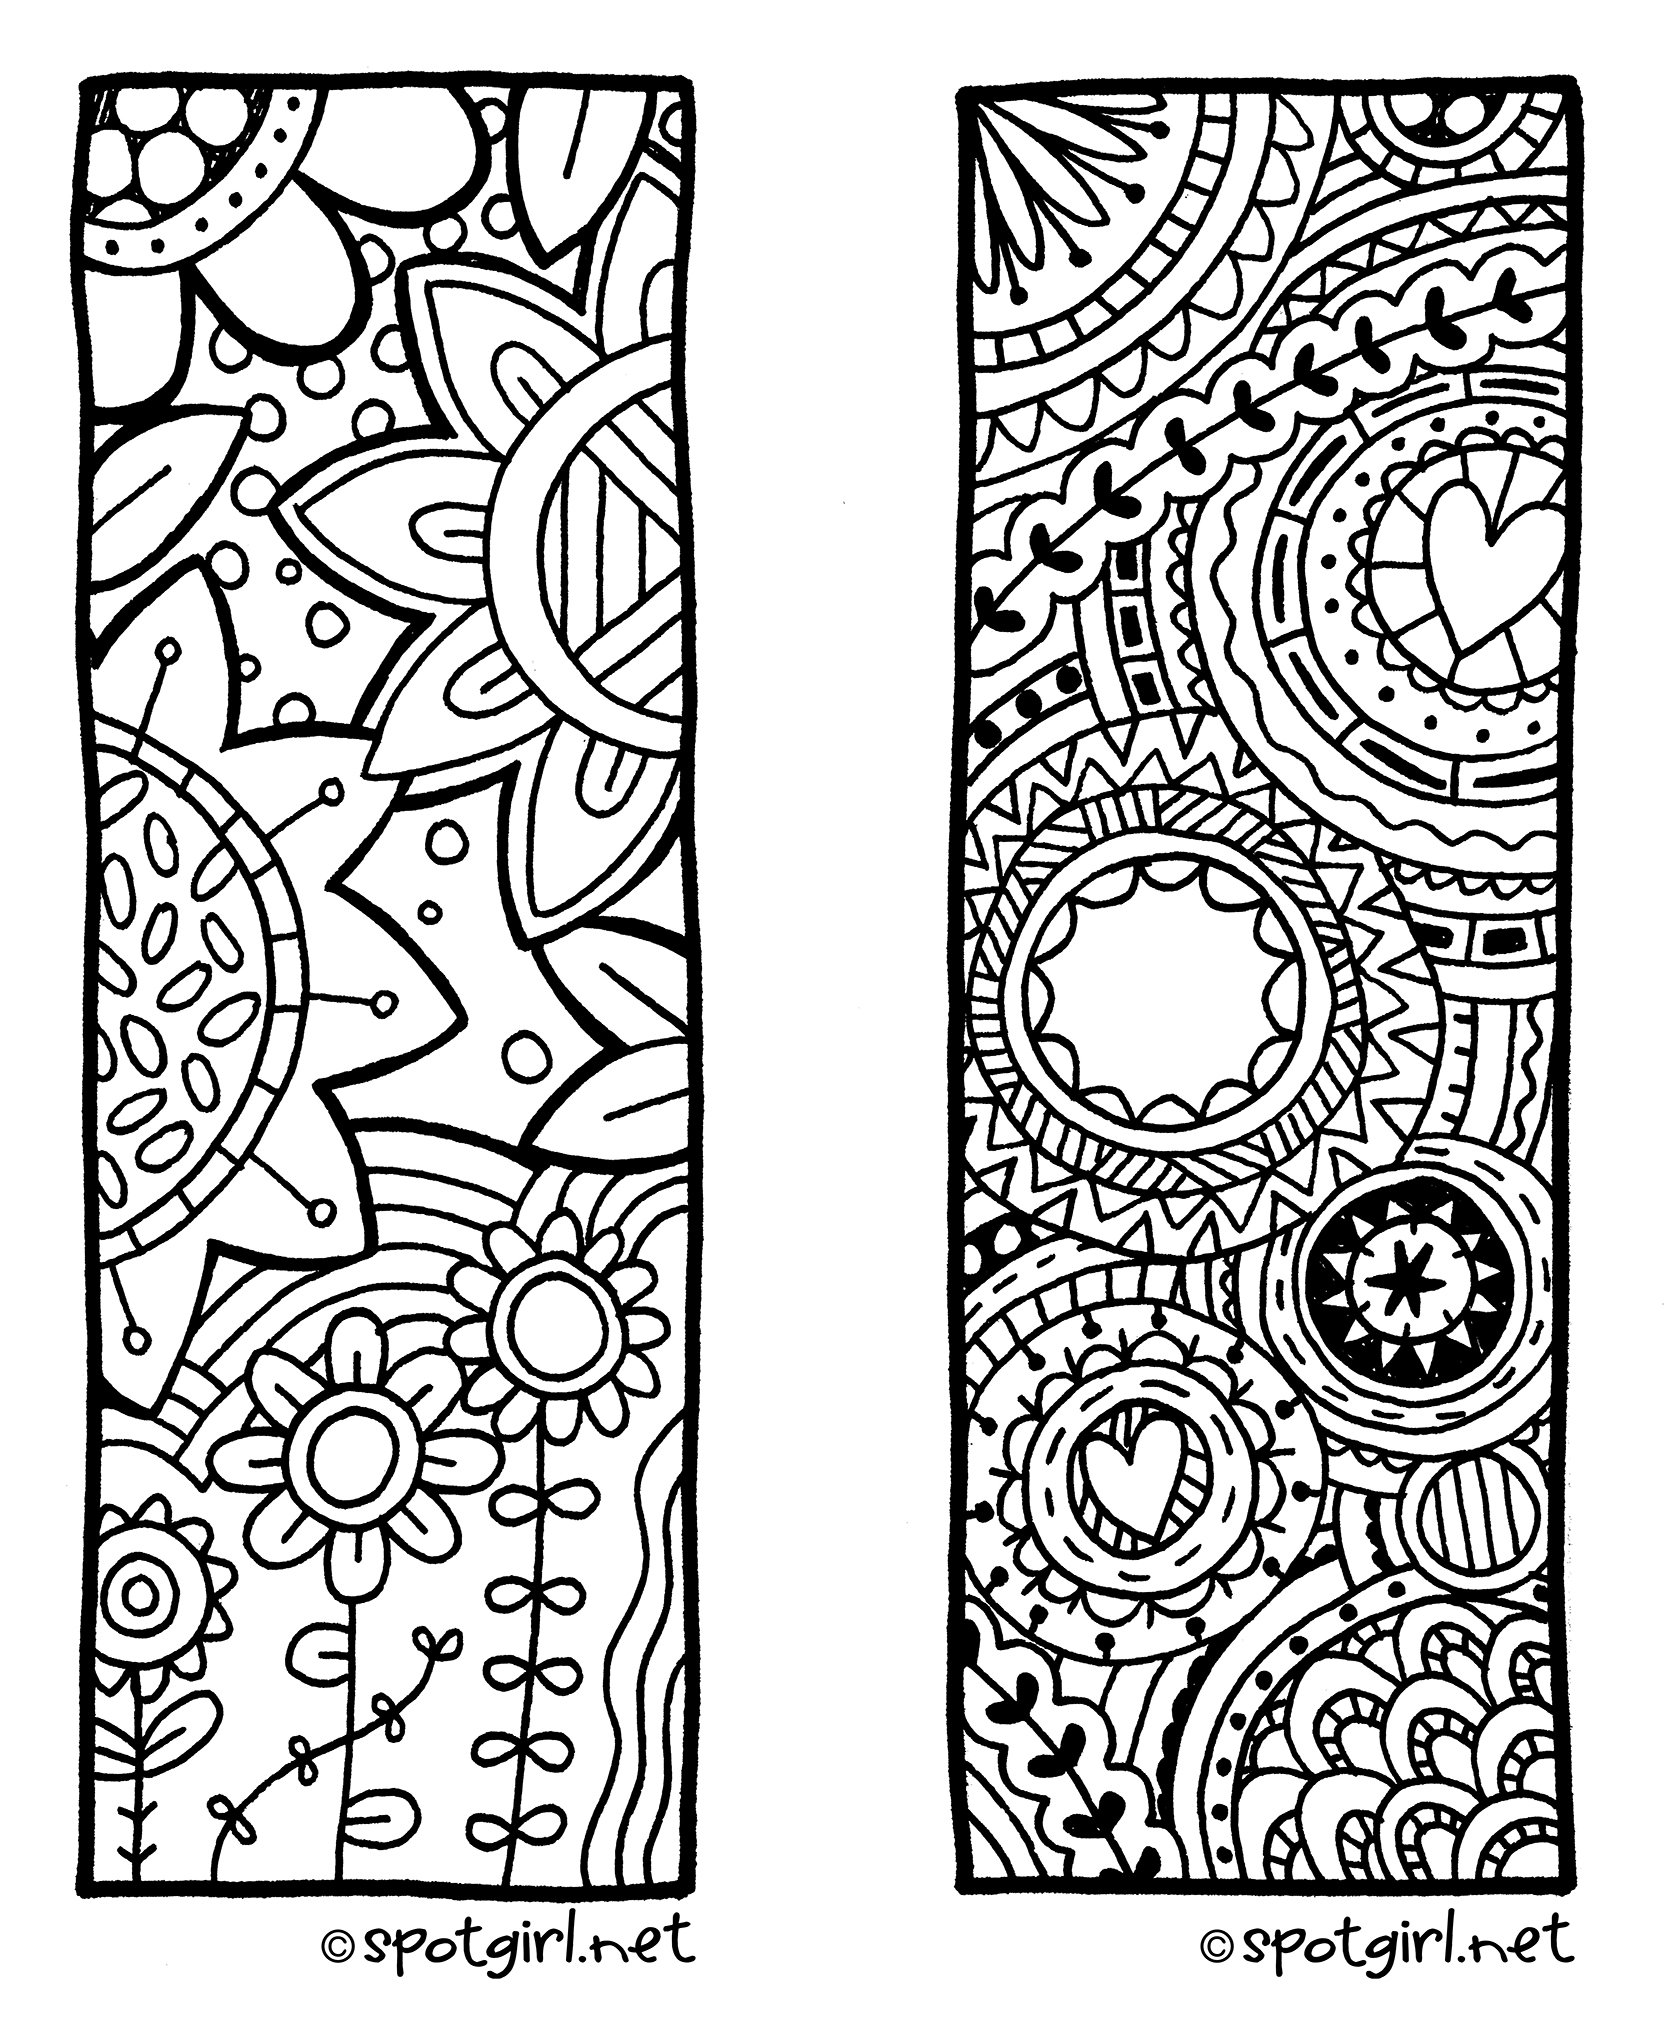 coloring pages bookmarks - photo#22